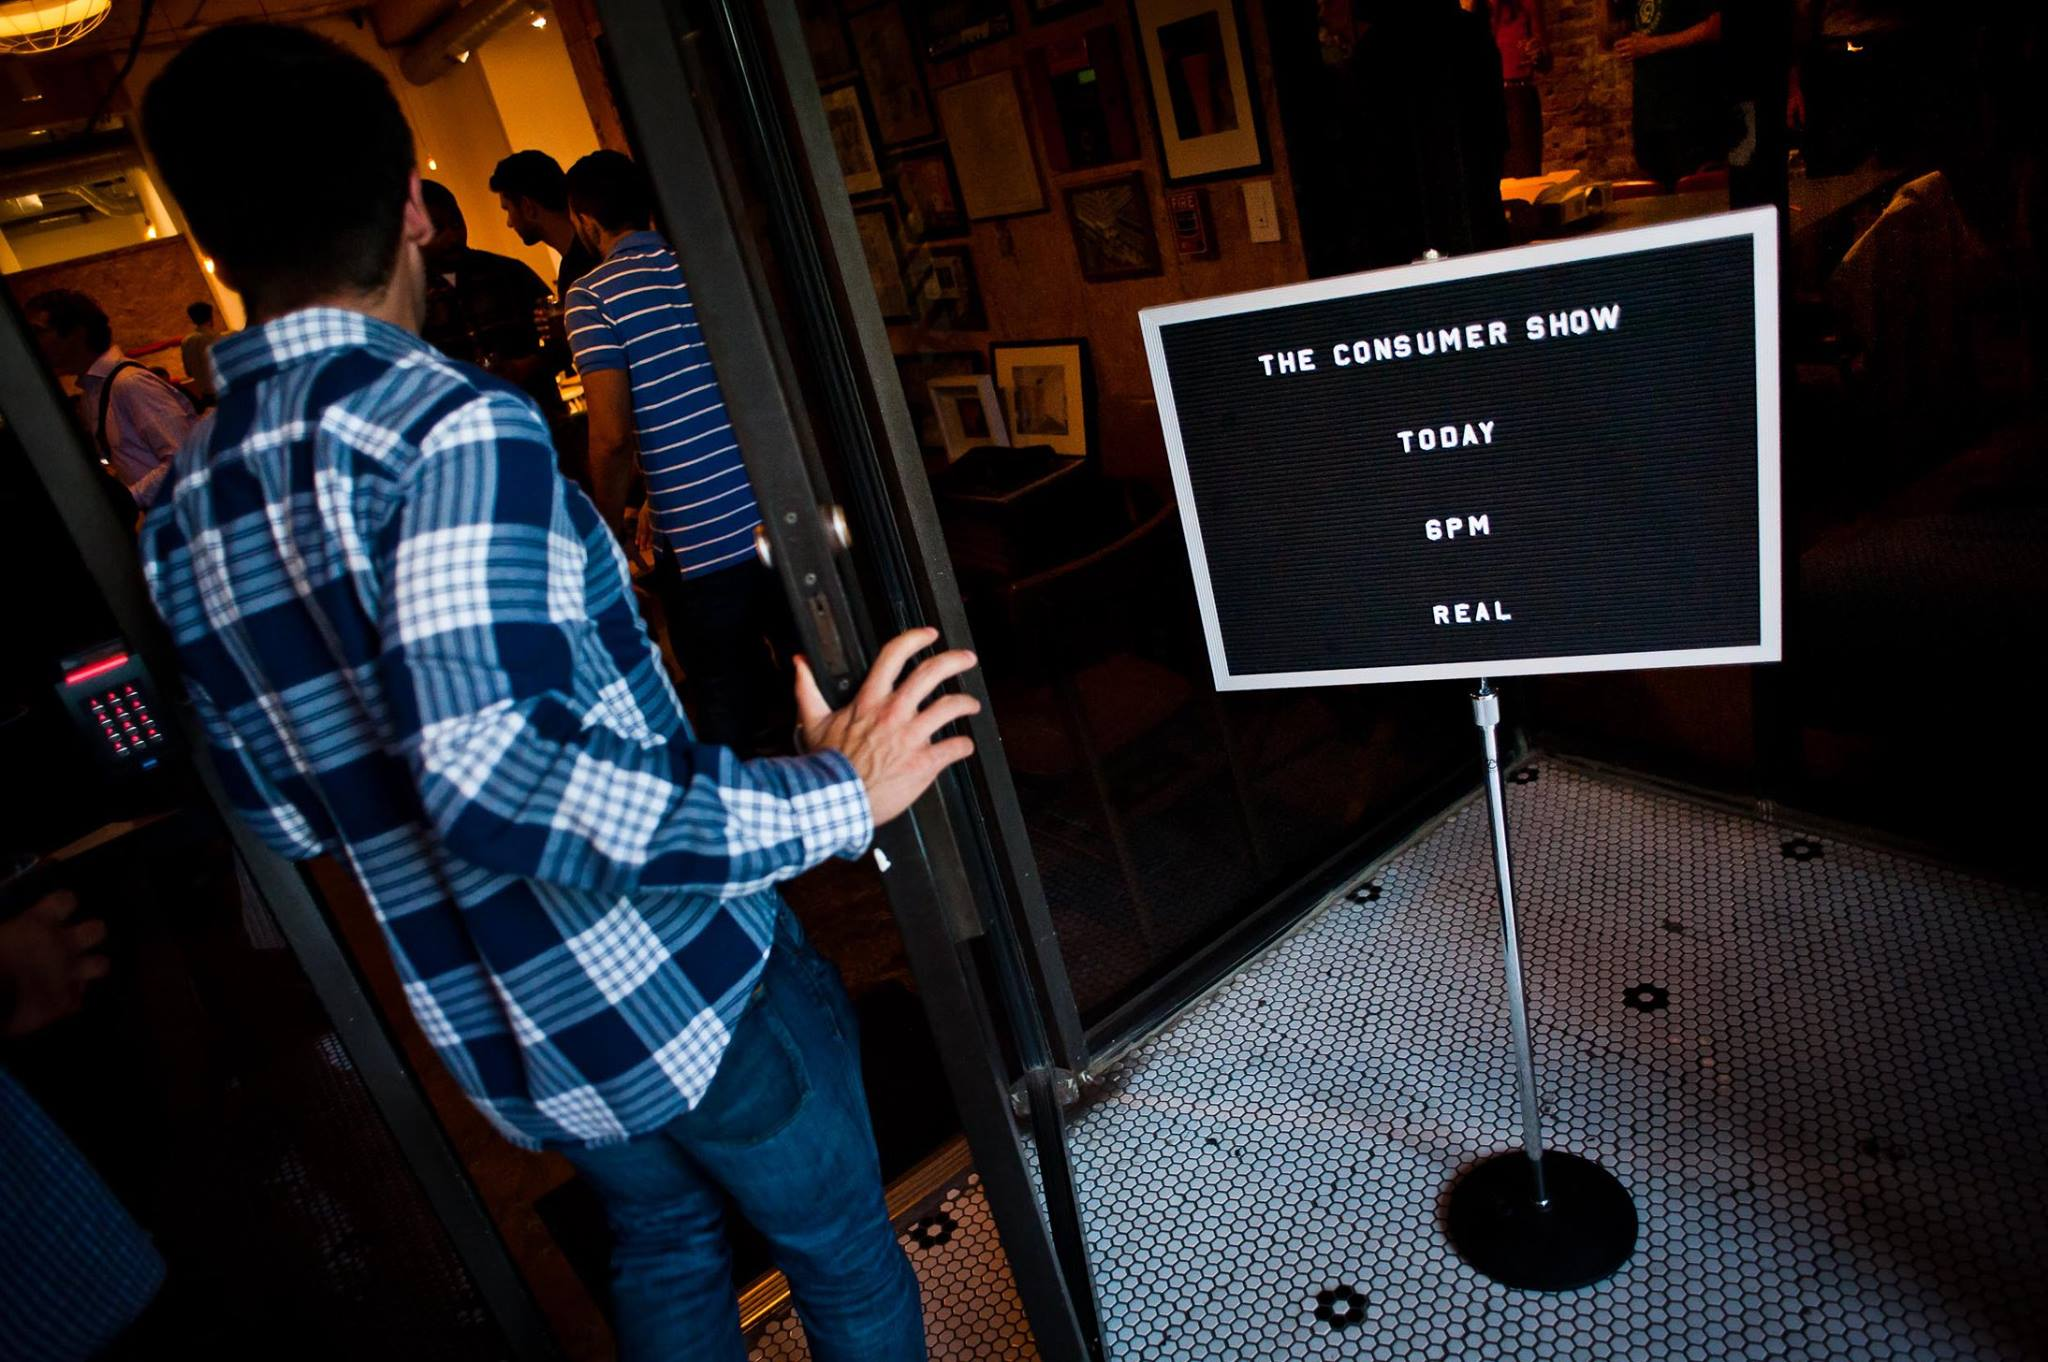 """The Consumer Show  at Switchyards: It's a """"real"""" good time. 